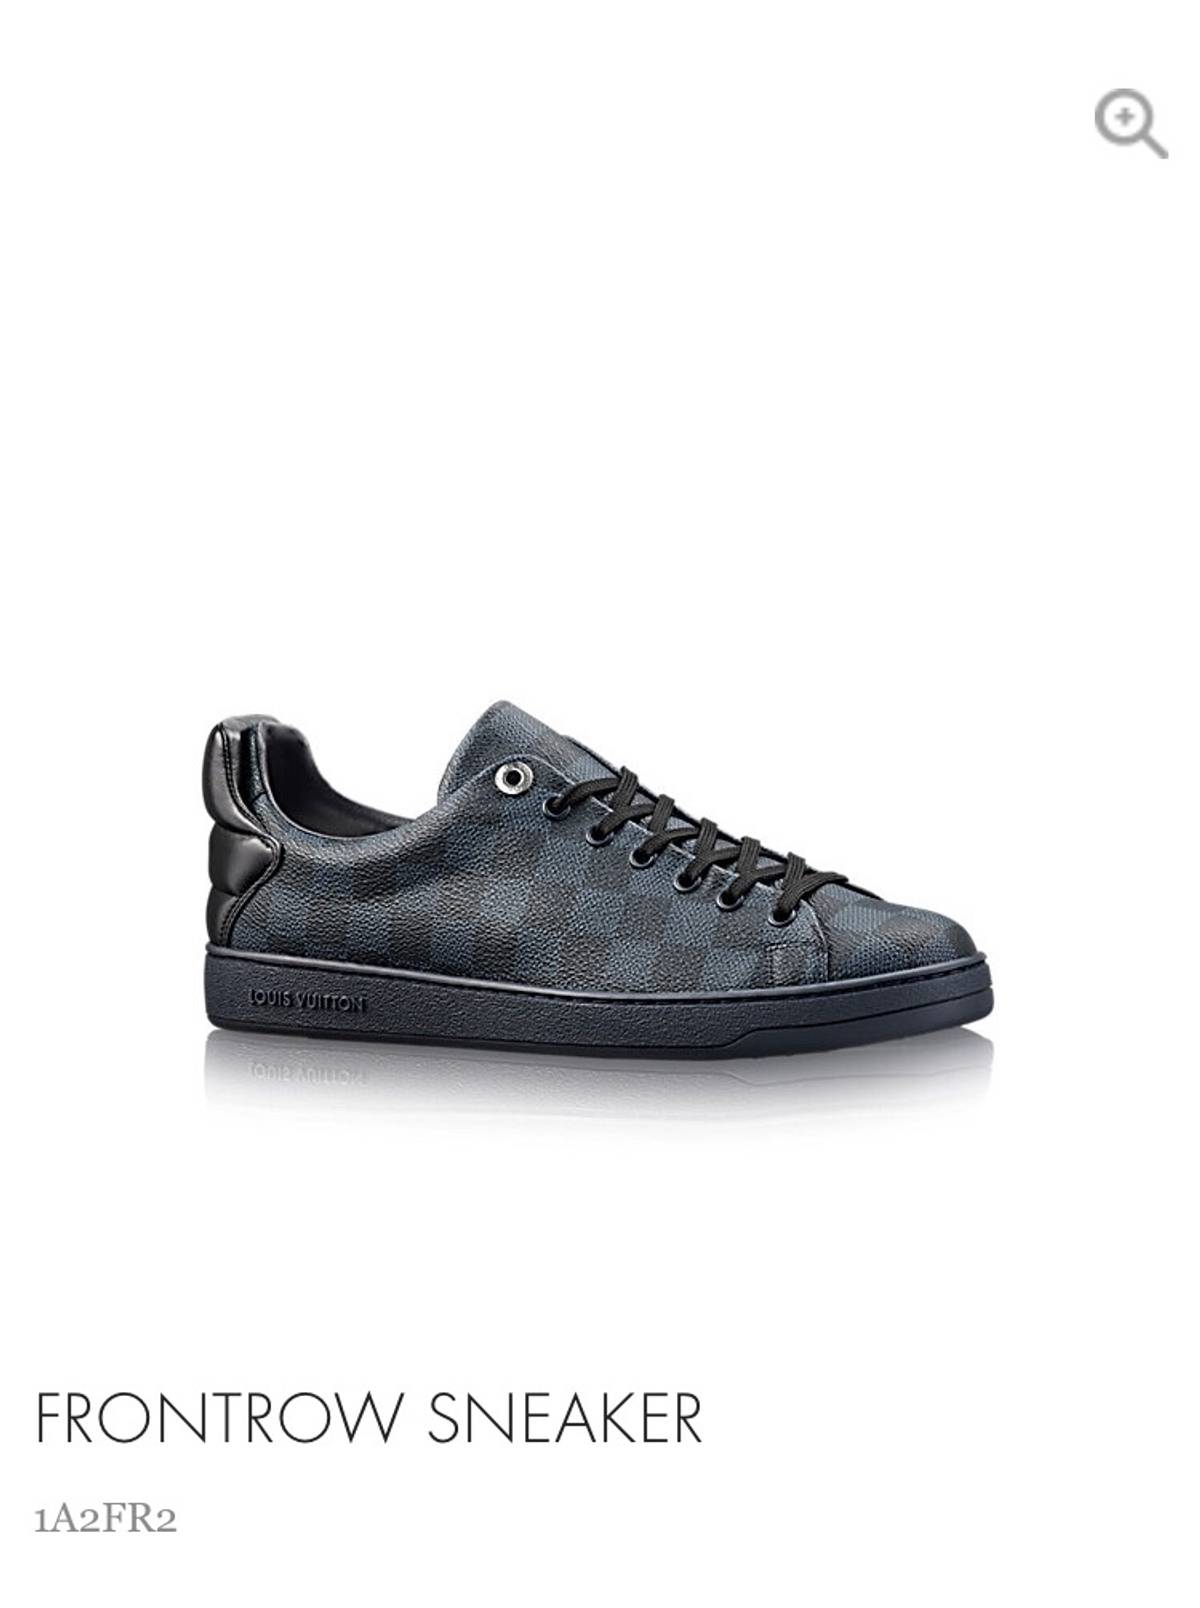 577a5abfcebc Louis Vuitton Frontrow Sneaker Size 9 - Low-Top Sneakers for Sale - Grailed